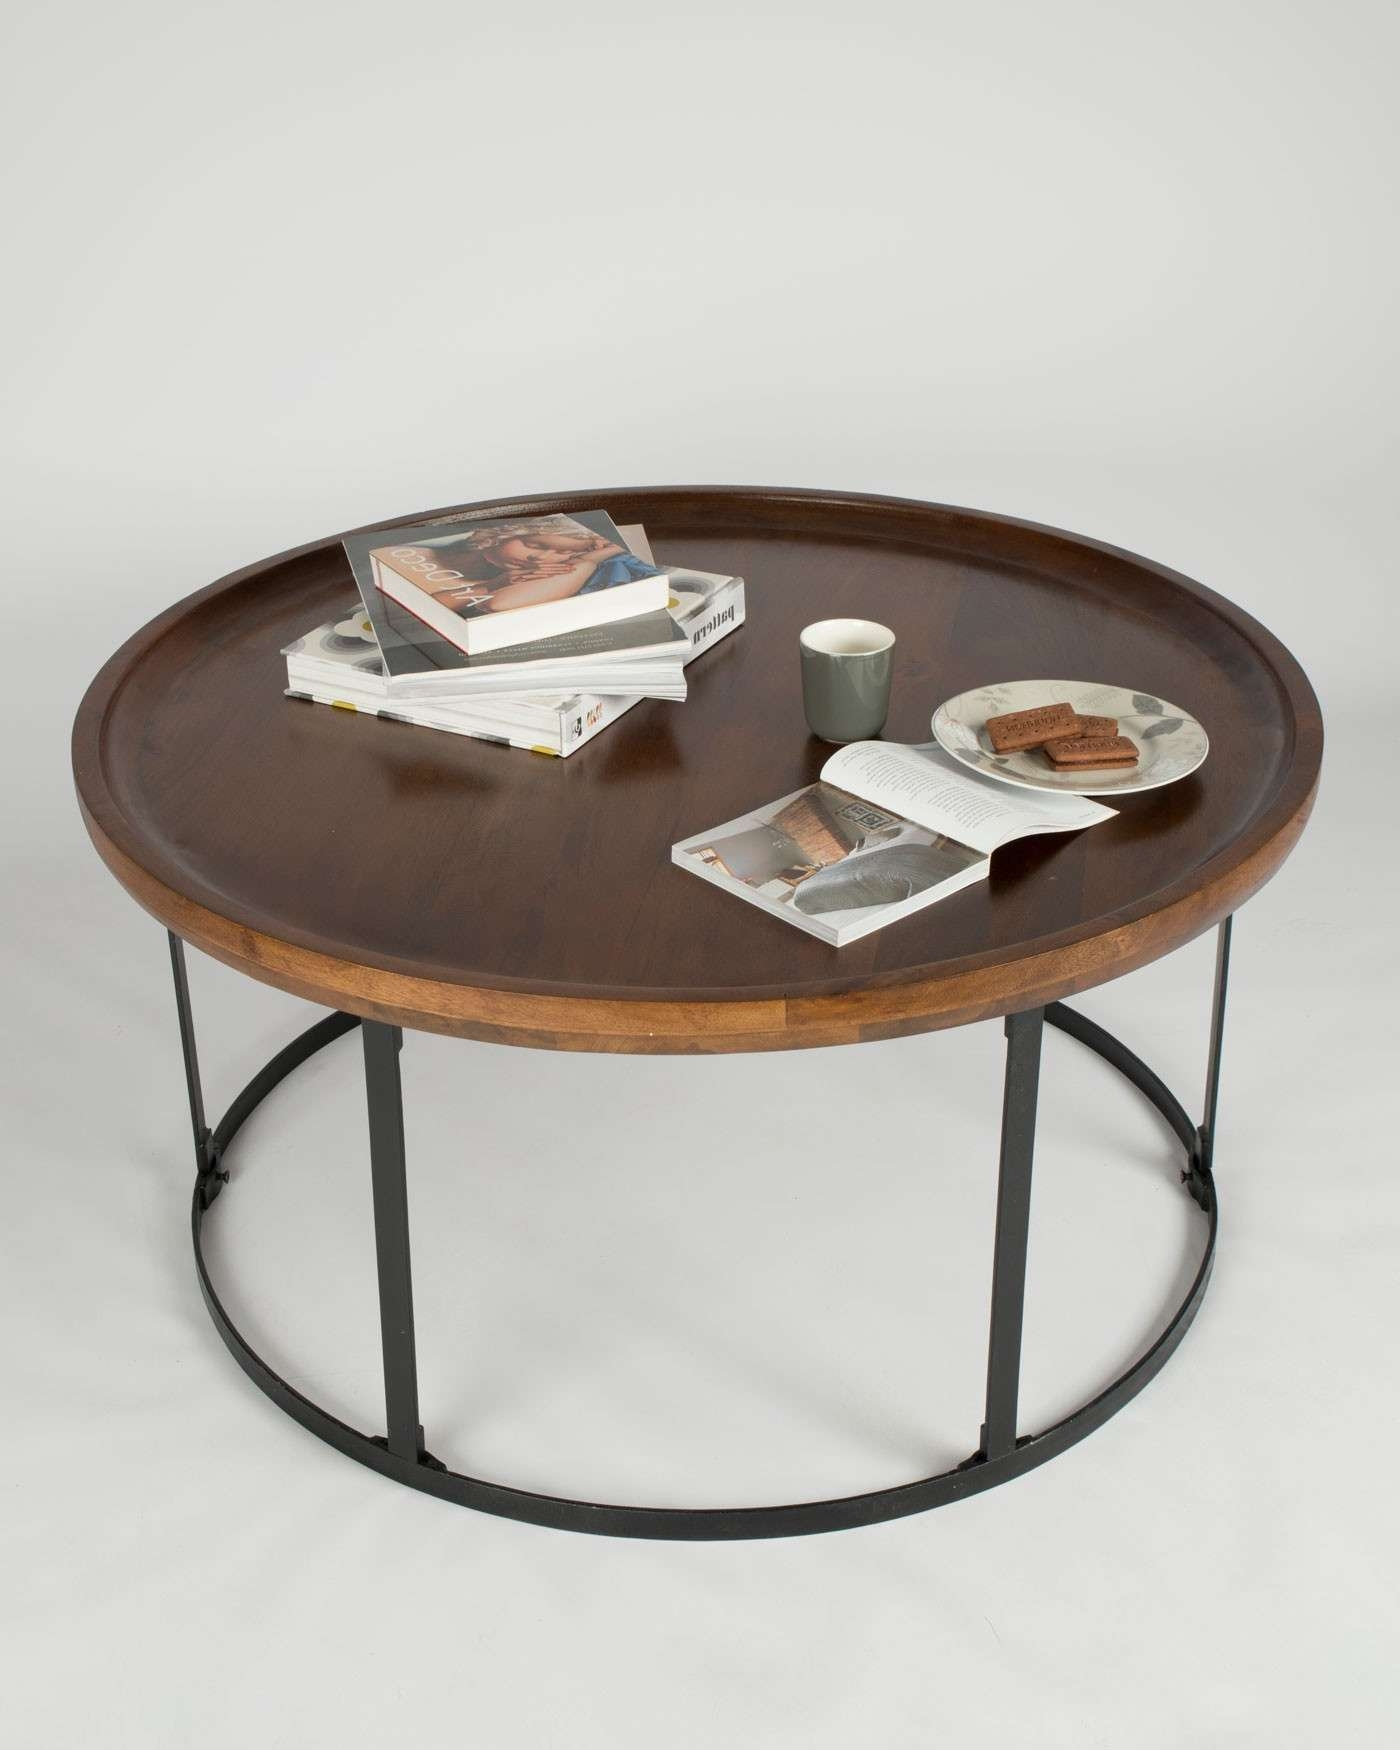 Coffee Table : Wonderful Tea Table Online Low Coffee Table Black Inside Most Recently Released Black Circle Coffee Tables (View 3 of 20)